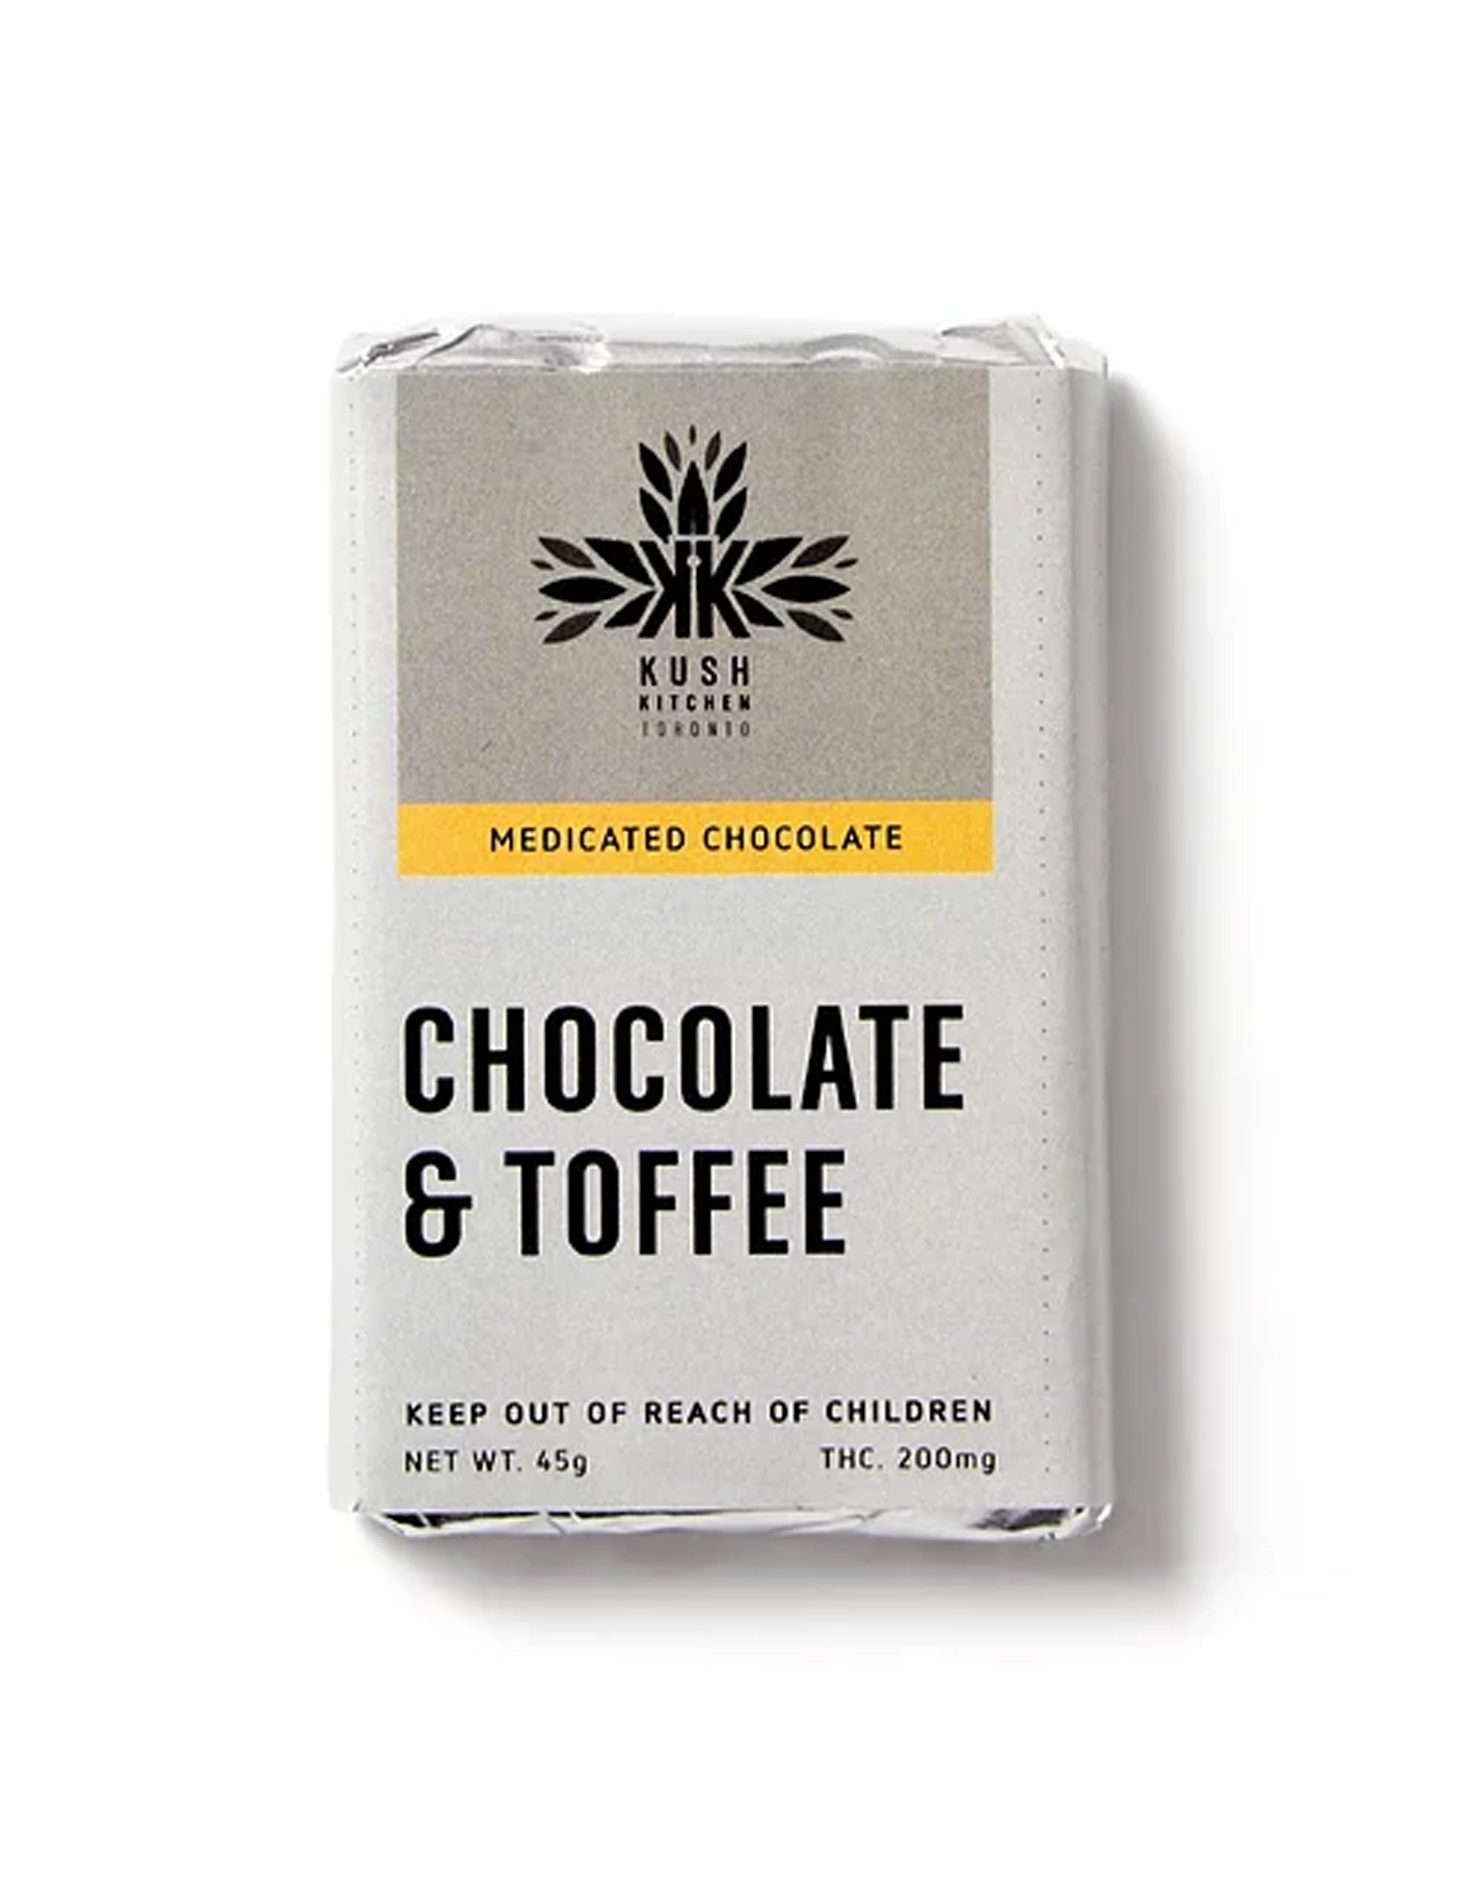 Milk Chocolate & Toffee Bar (200mg THC) by Kush Kitchen by Ganja Grams - Image © 2020 Ganja Grams. All Rights Reserved.